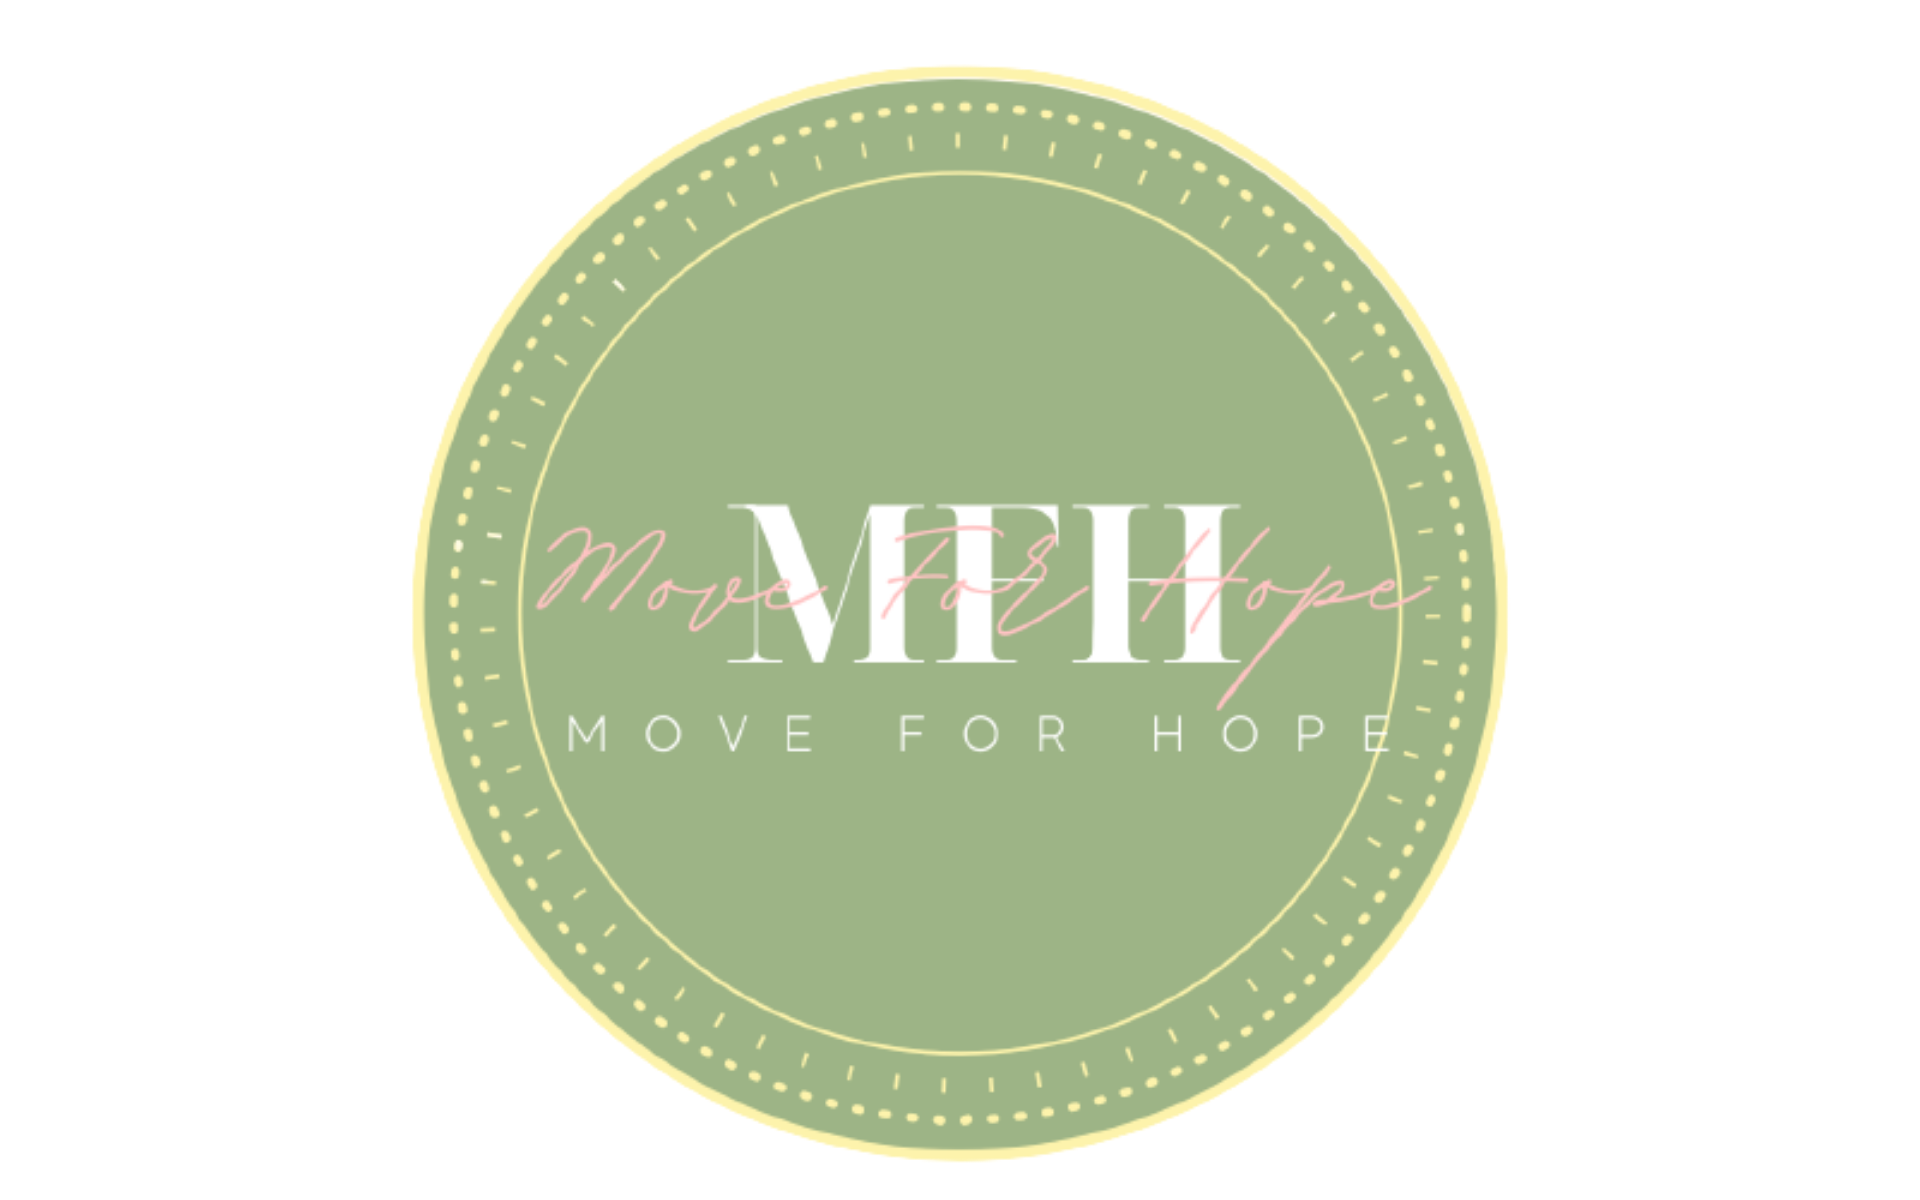 Introducing the team behind Move For Hope: Amira Kamaluddin, Ula Wyss, Vanessa Tay, Katelyn Tan, Jaan Joseph, Gerald Anyi and Alex Webster